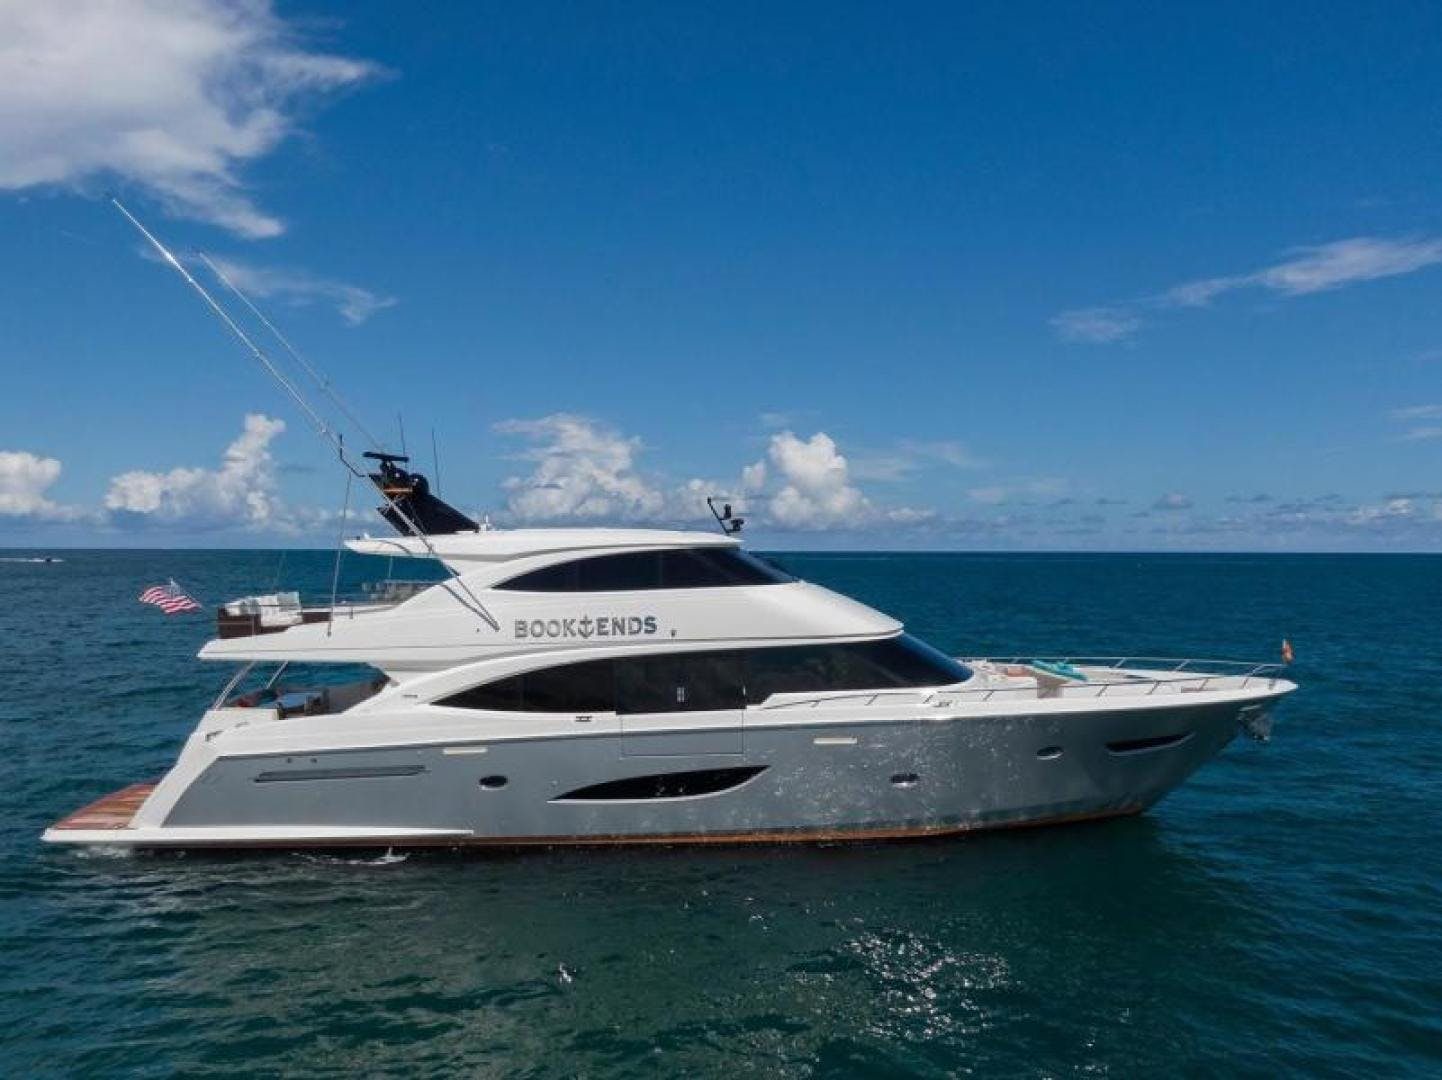 2018 Viking 93' Motoryacht Enclosed Flybridge BOOK ENDS   Picture 1 of 104